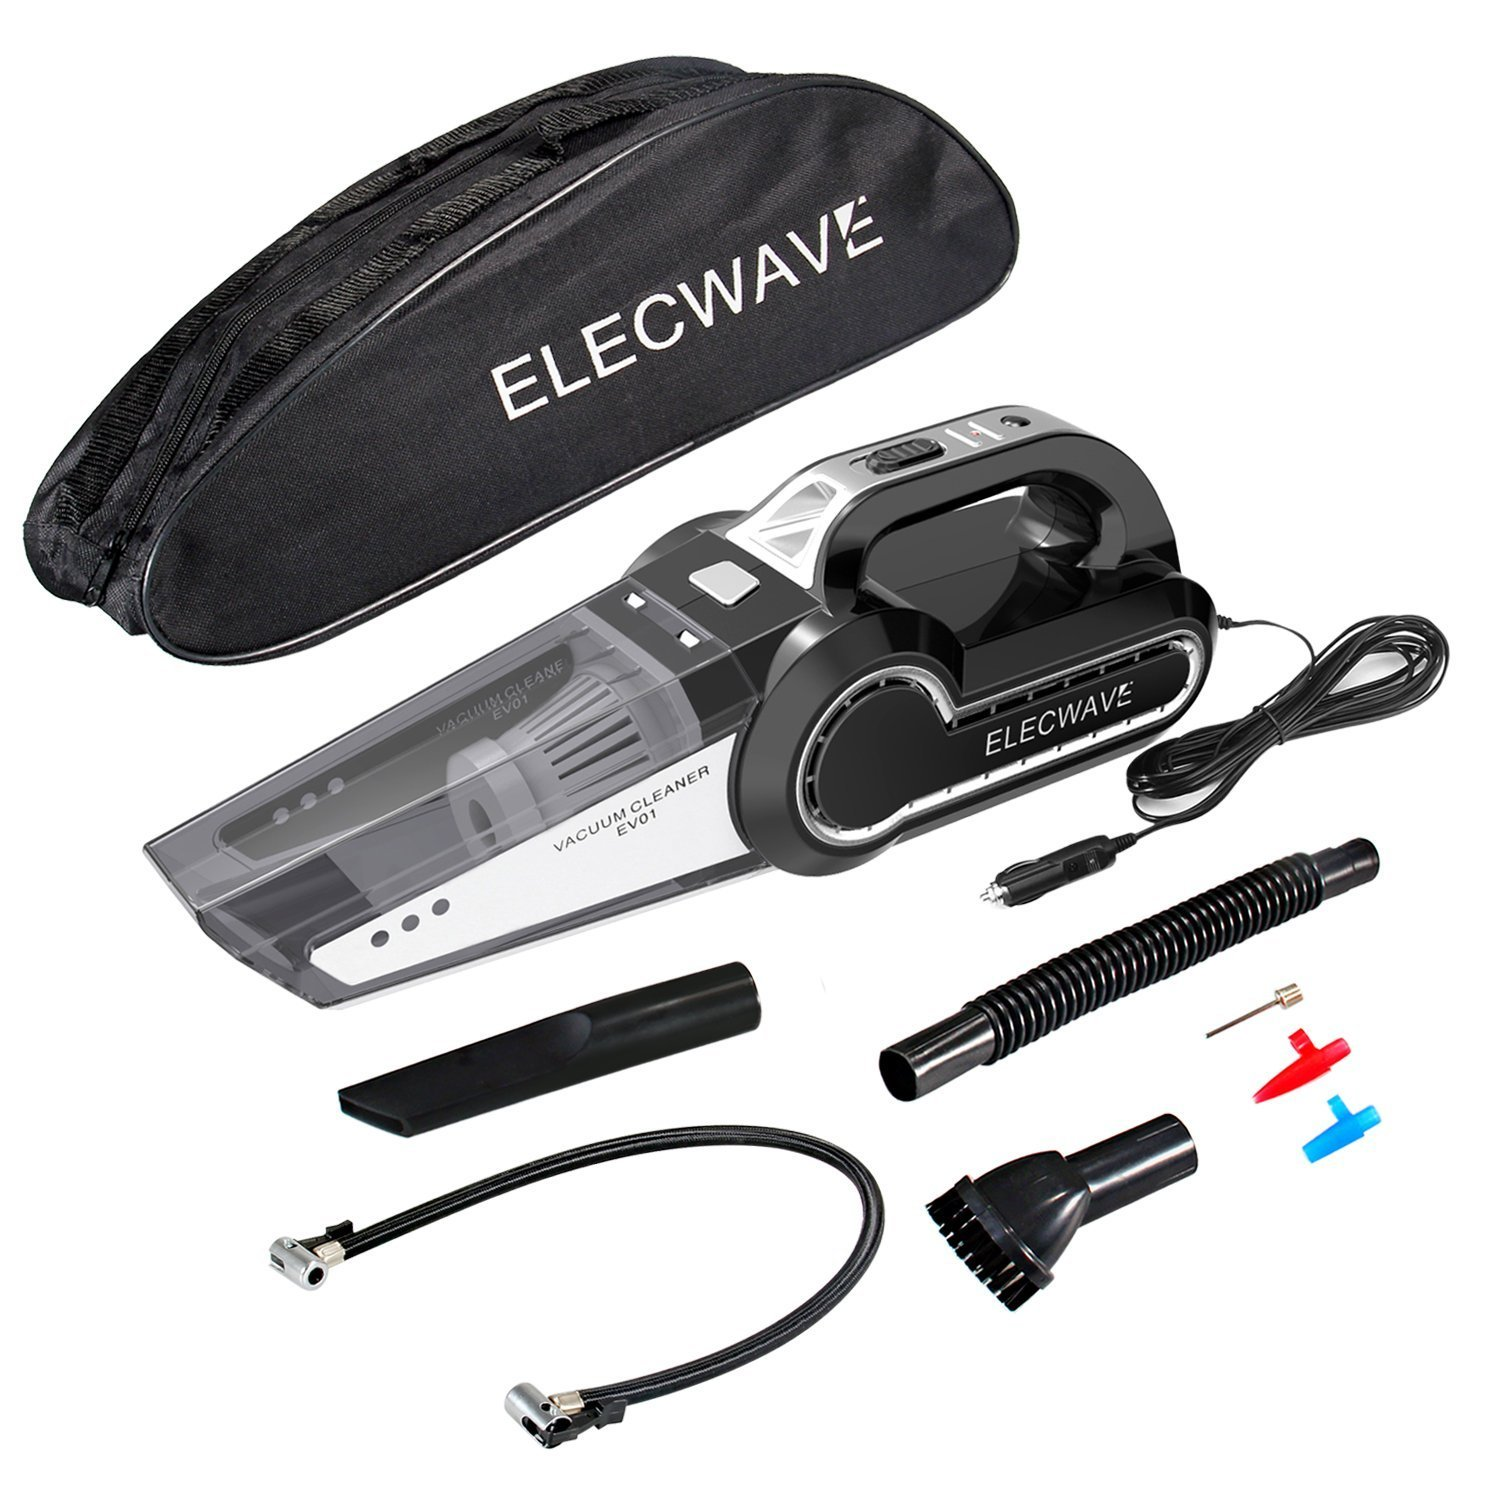 Elecwave V00-1296N-01 Car Vacuum, Black